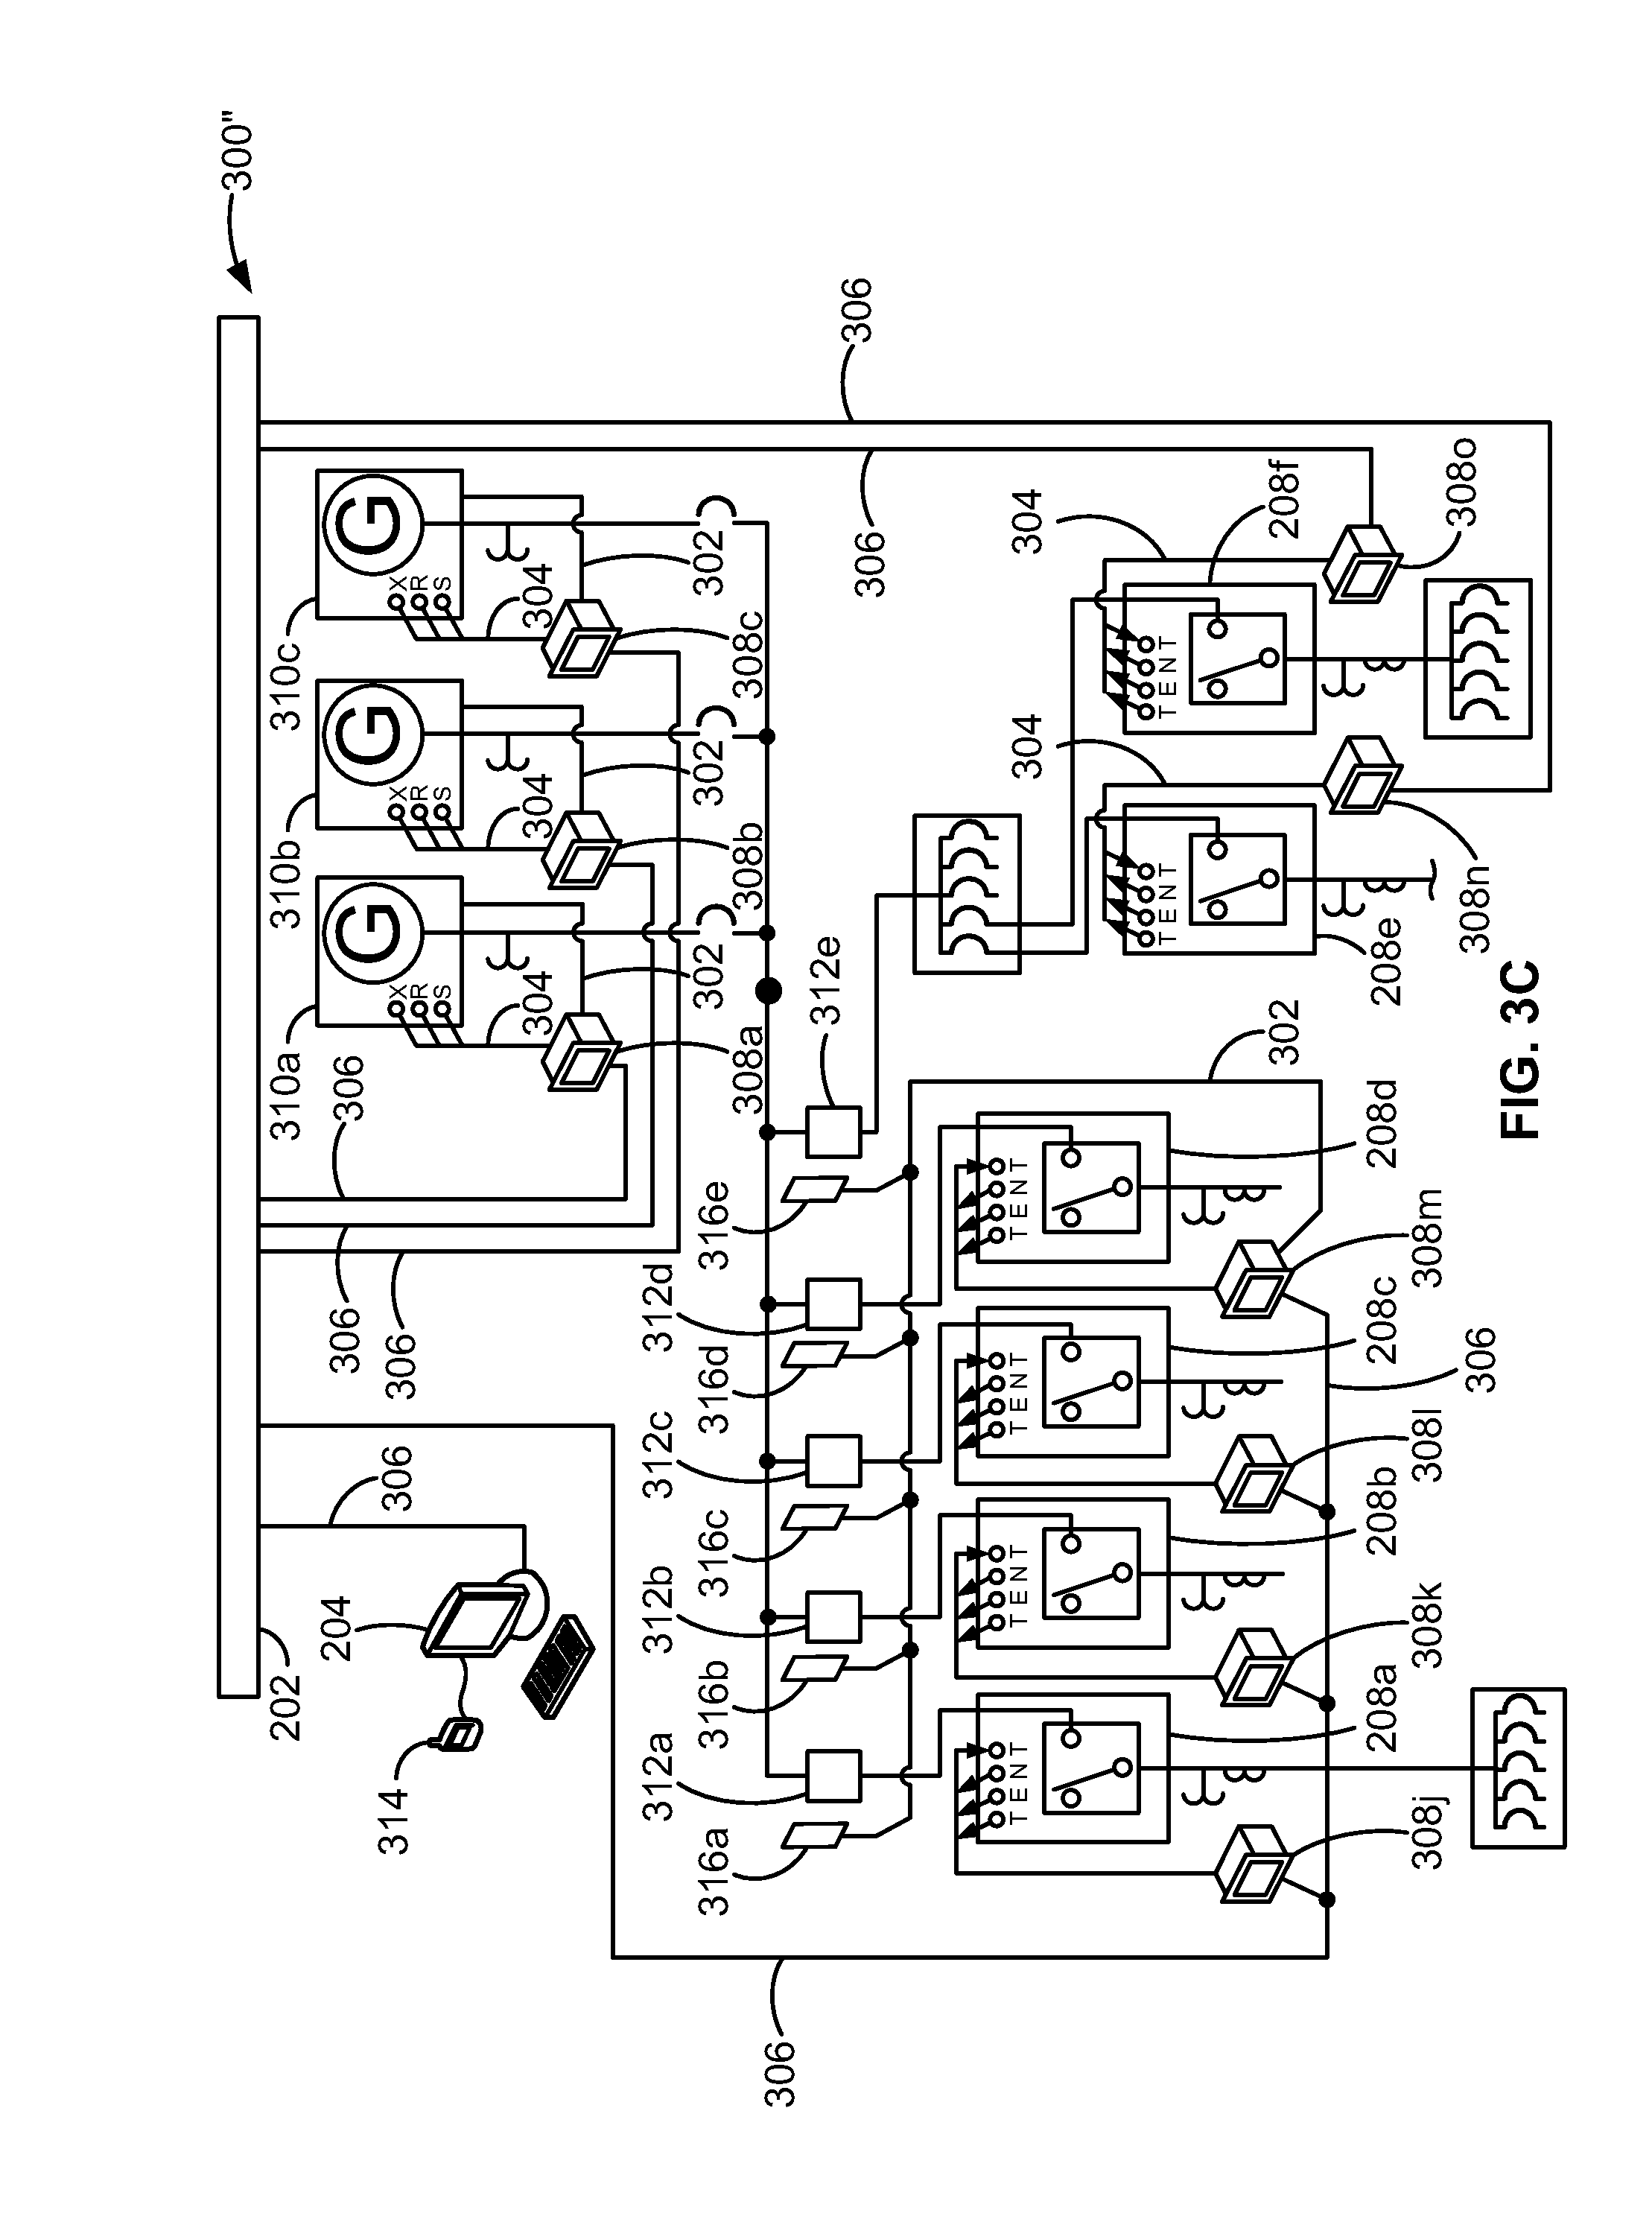 Patent US Automated emergency power supply test using